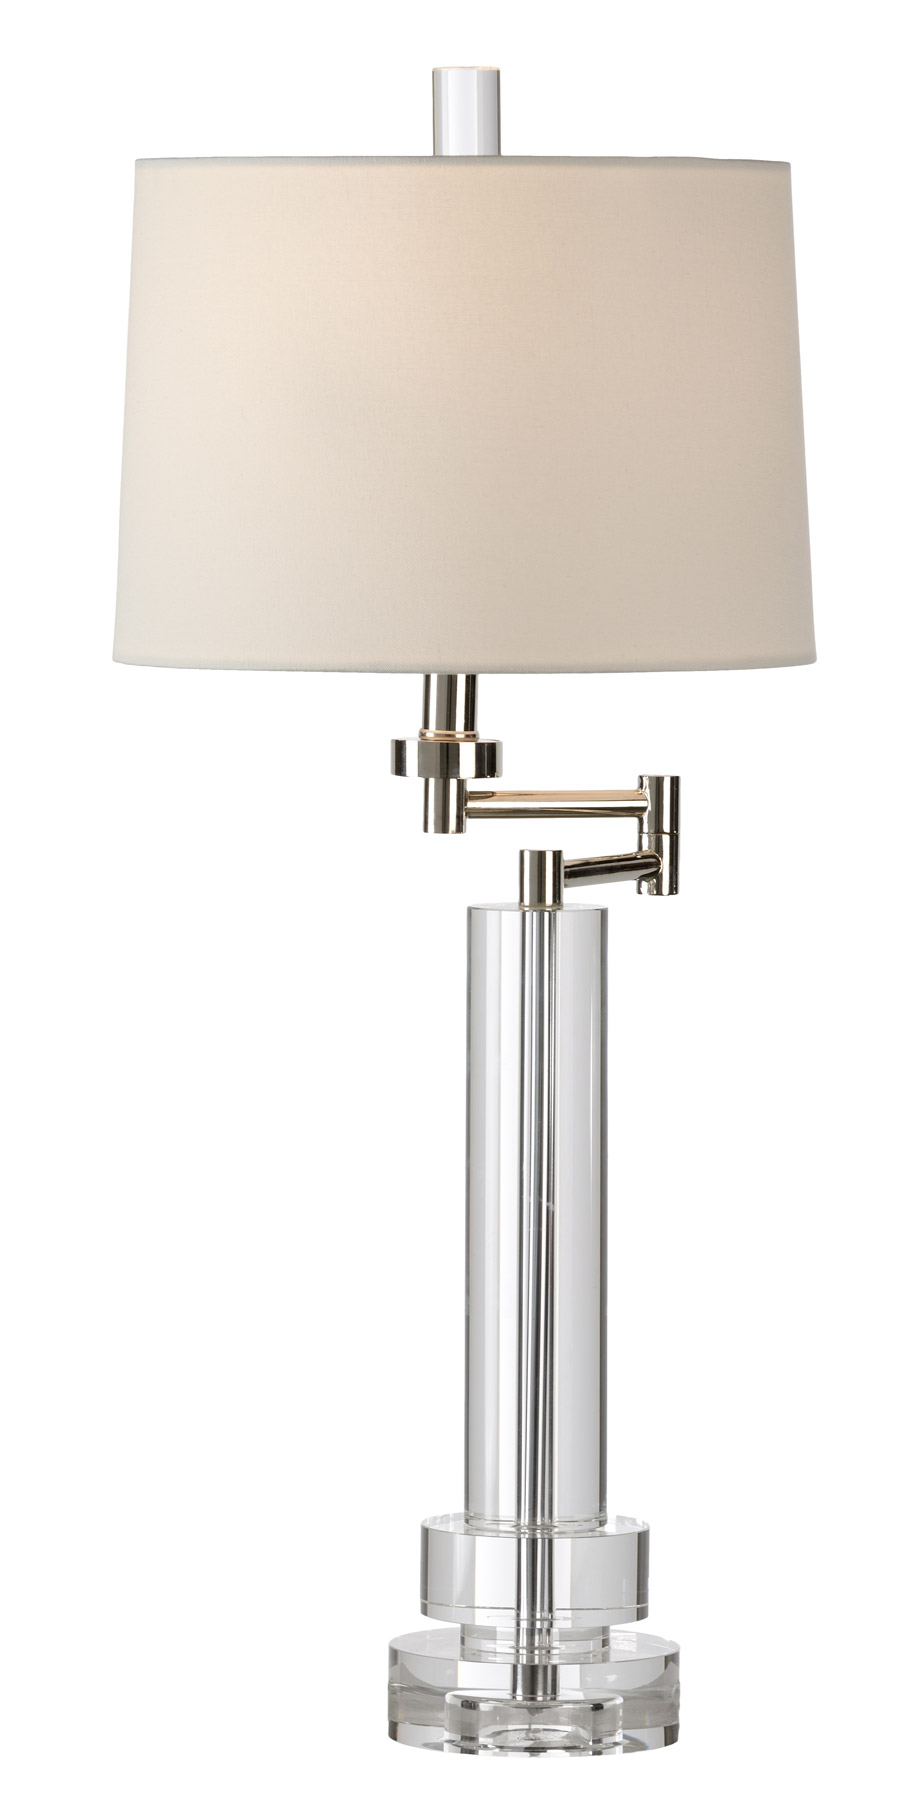 22159 crystal graduated rounds swing arm table lamp view larger image geotapseo Gallery